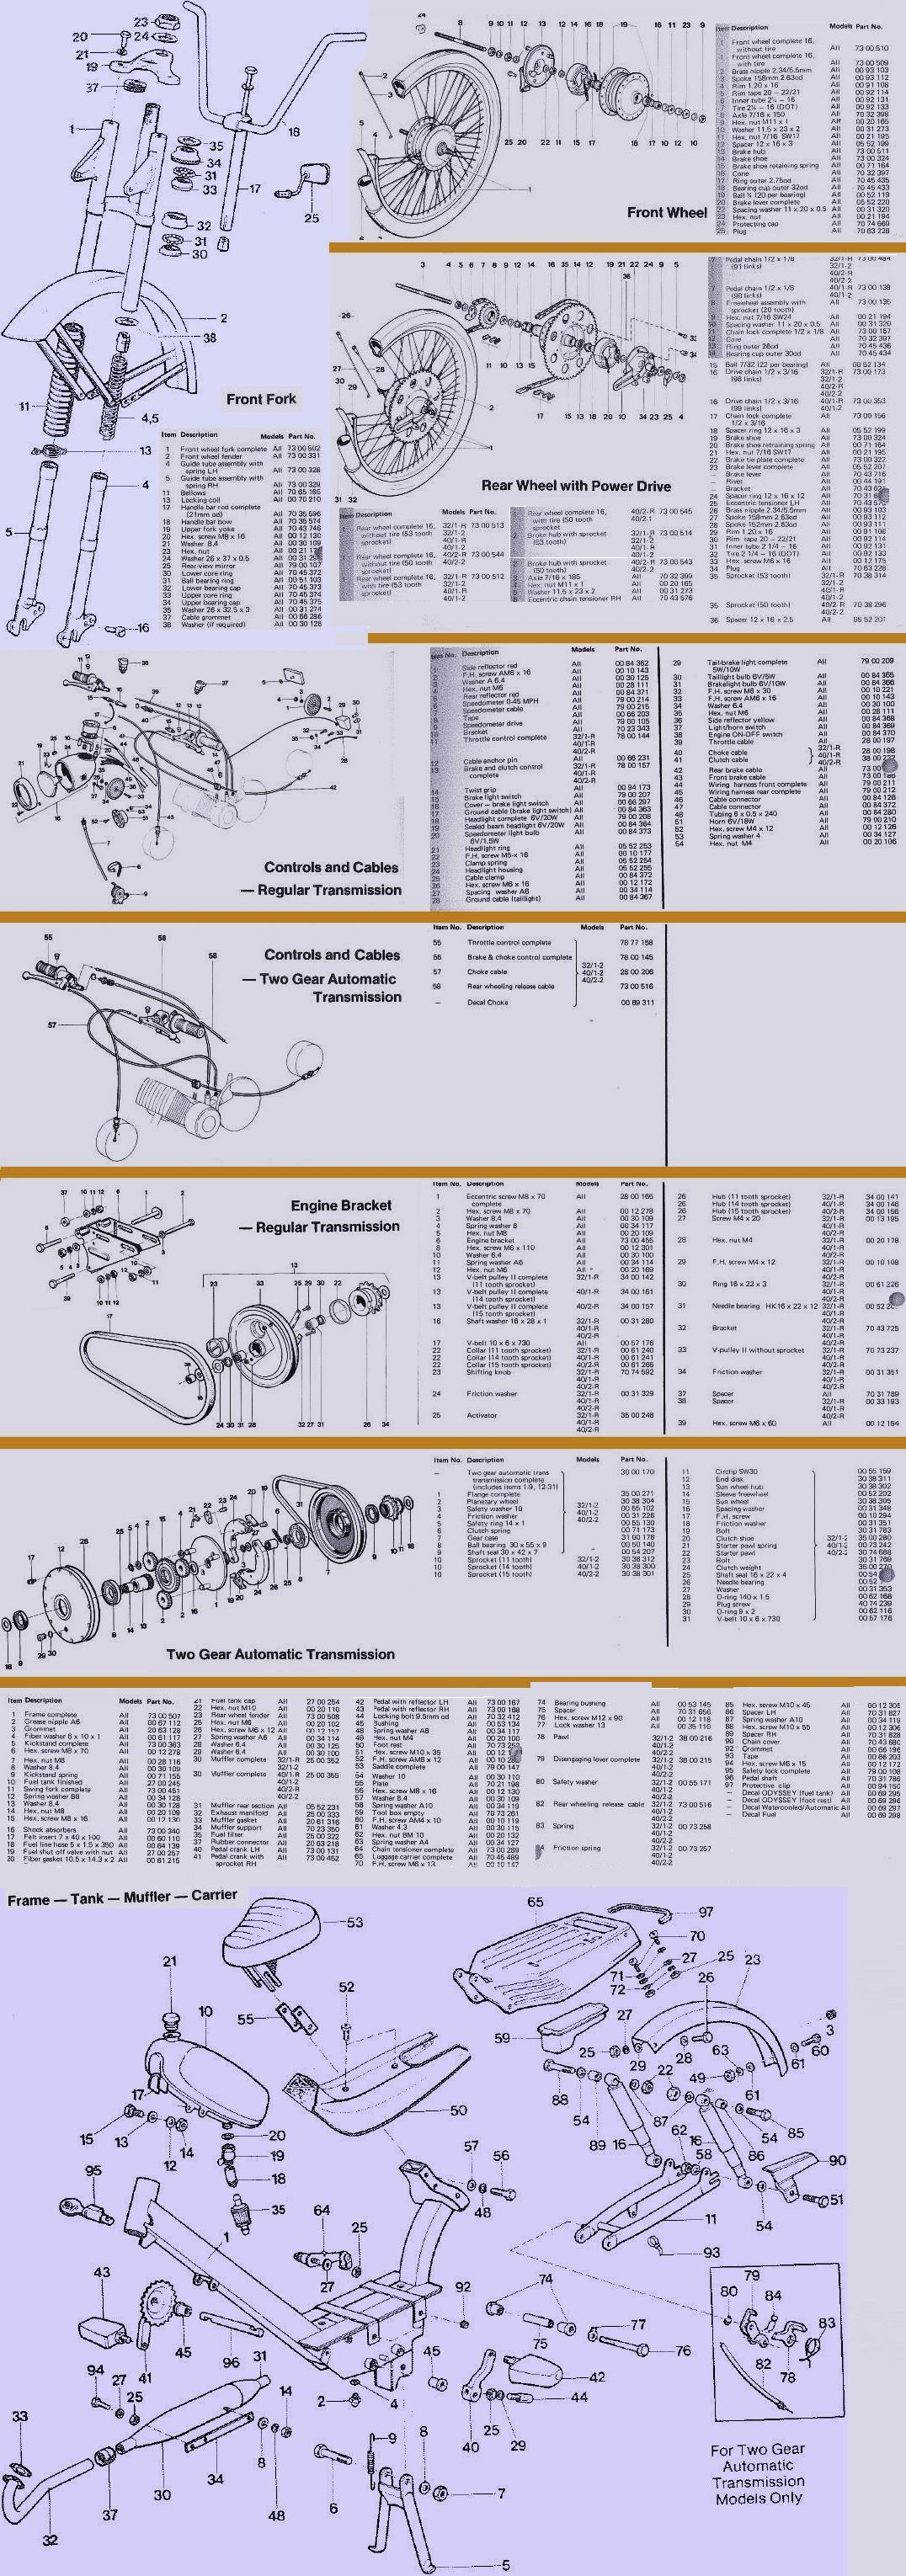 Odyssey Parts Manual, first edition, April 1977